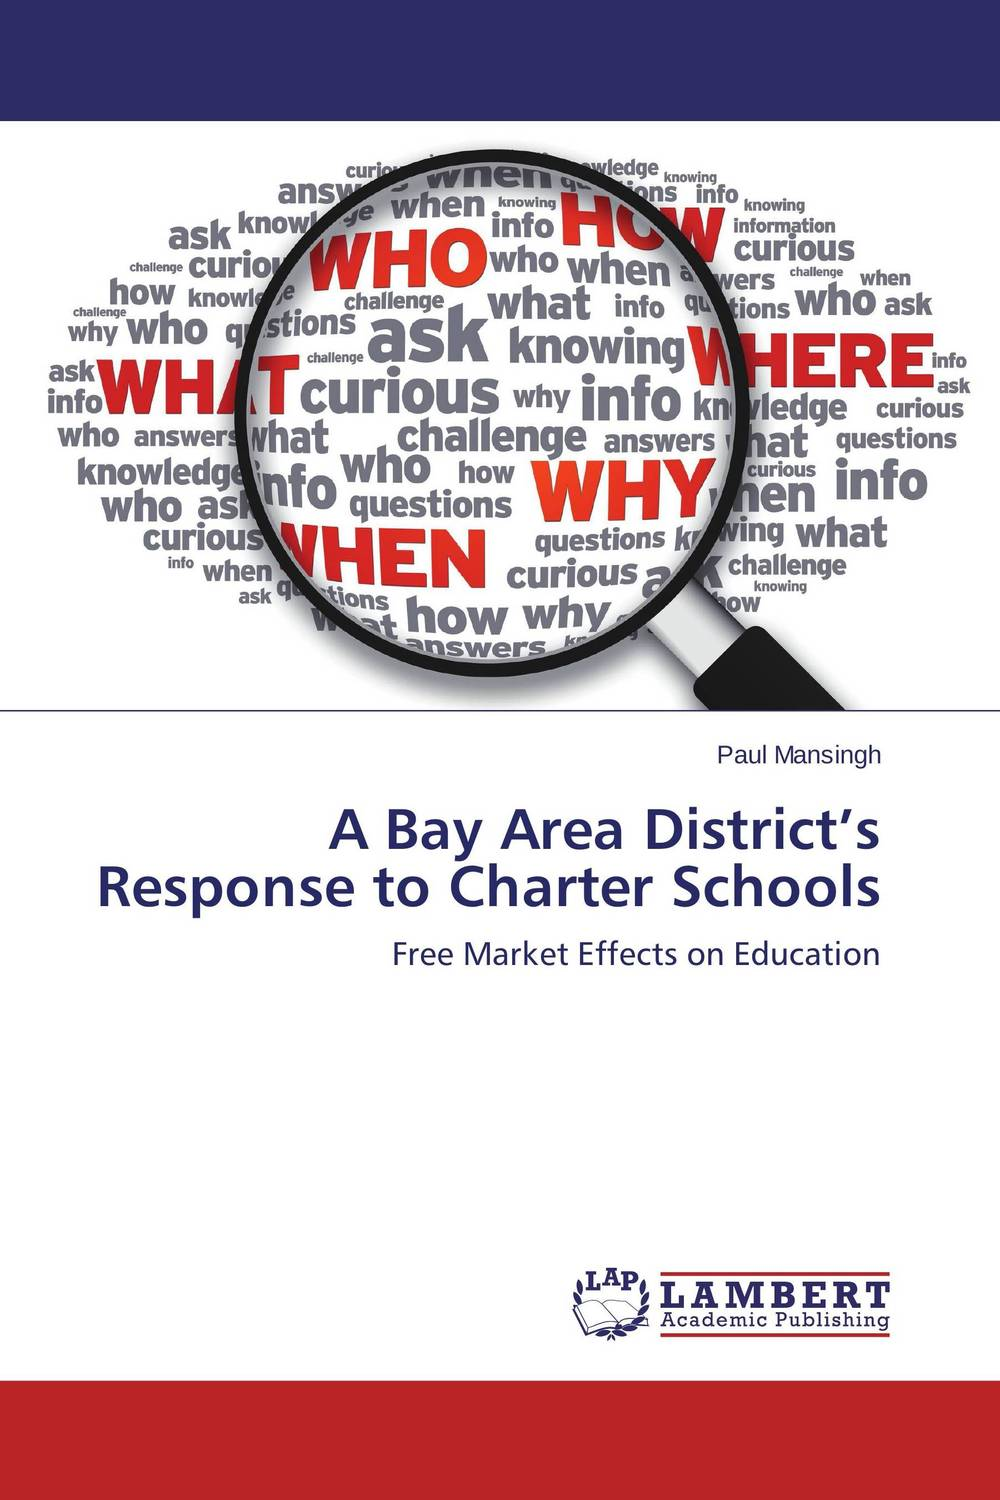 A Bay Area District's Response to Charter Schools charter schools